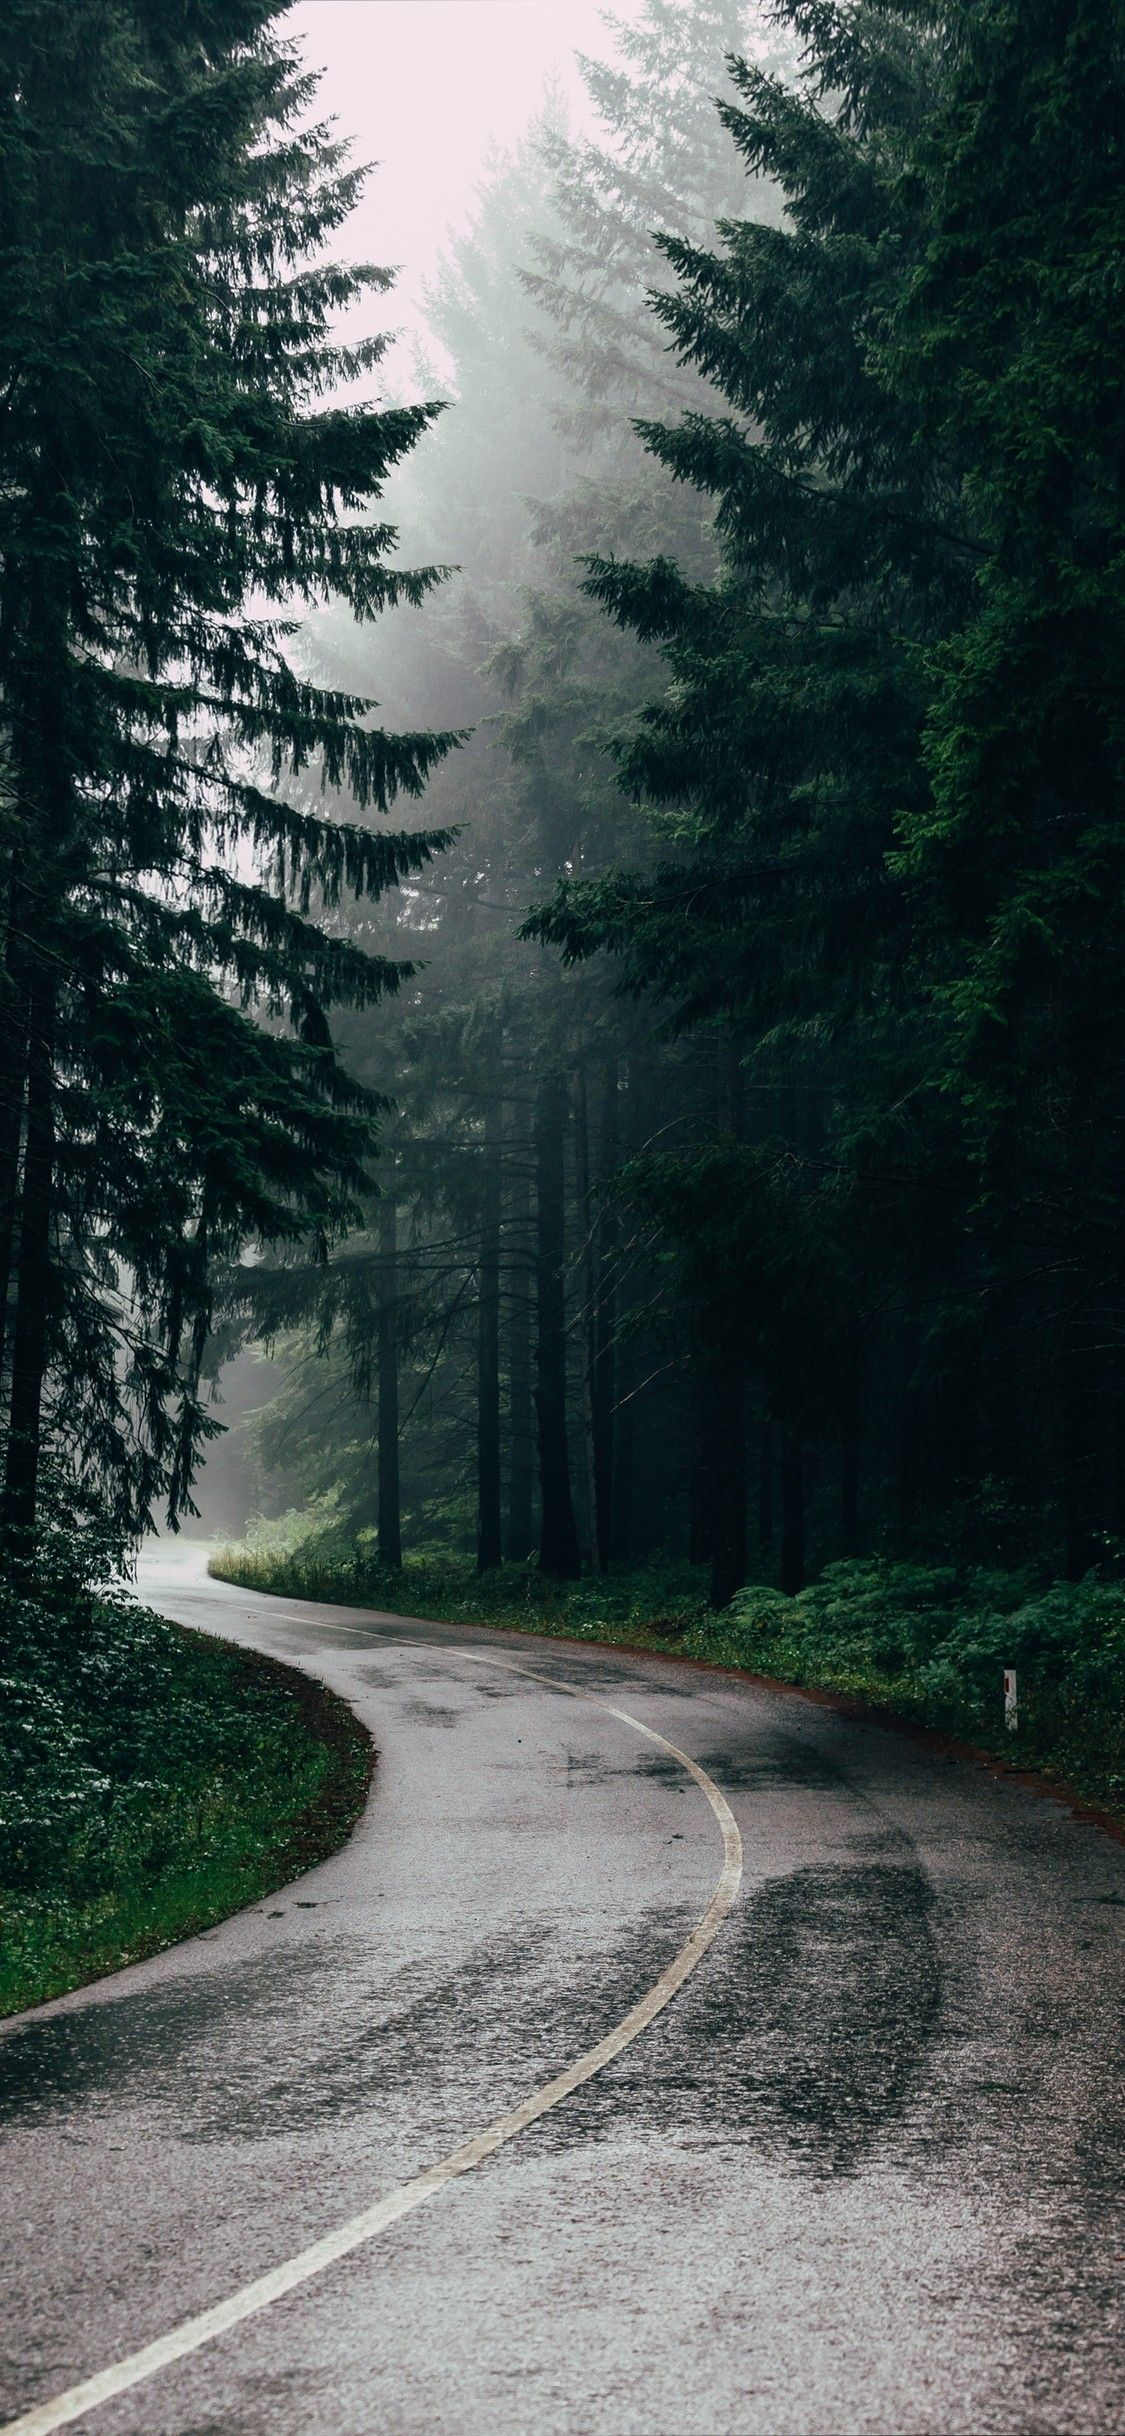 Iphone Wallpaper Nature 43 In 2020 Forest Photography Nature Photography Photography Wallpaper